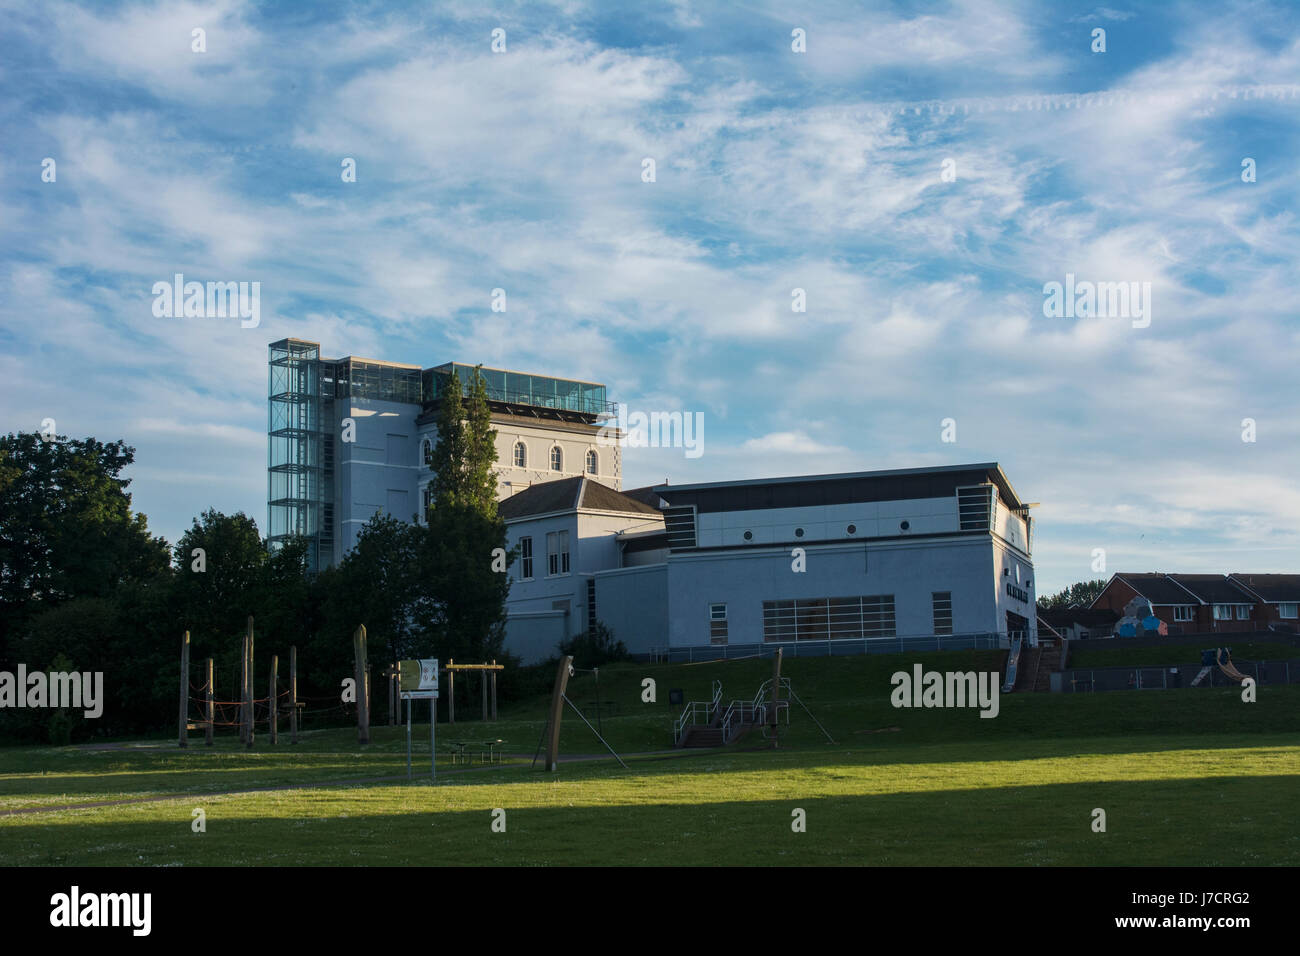 Catalyst museum in West Bank, Widnes, by Spike Island on the banks of the River Mersey close to the Runcorn - Widnes - Stock Image